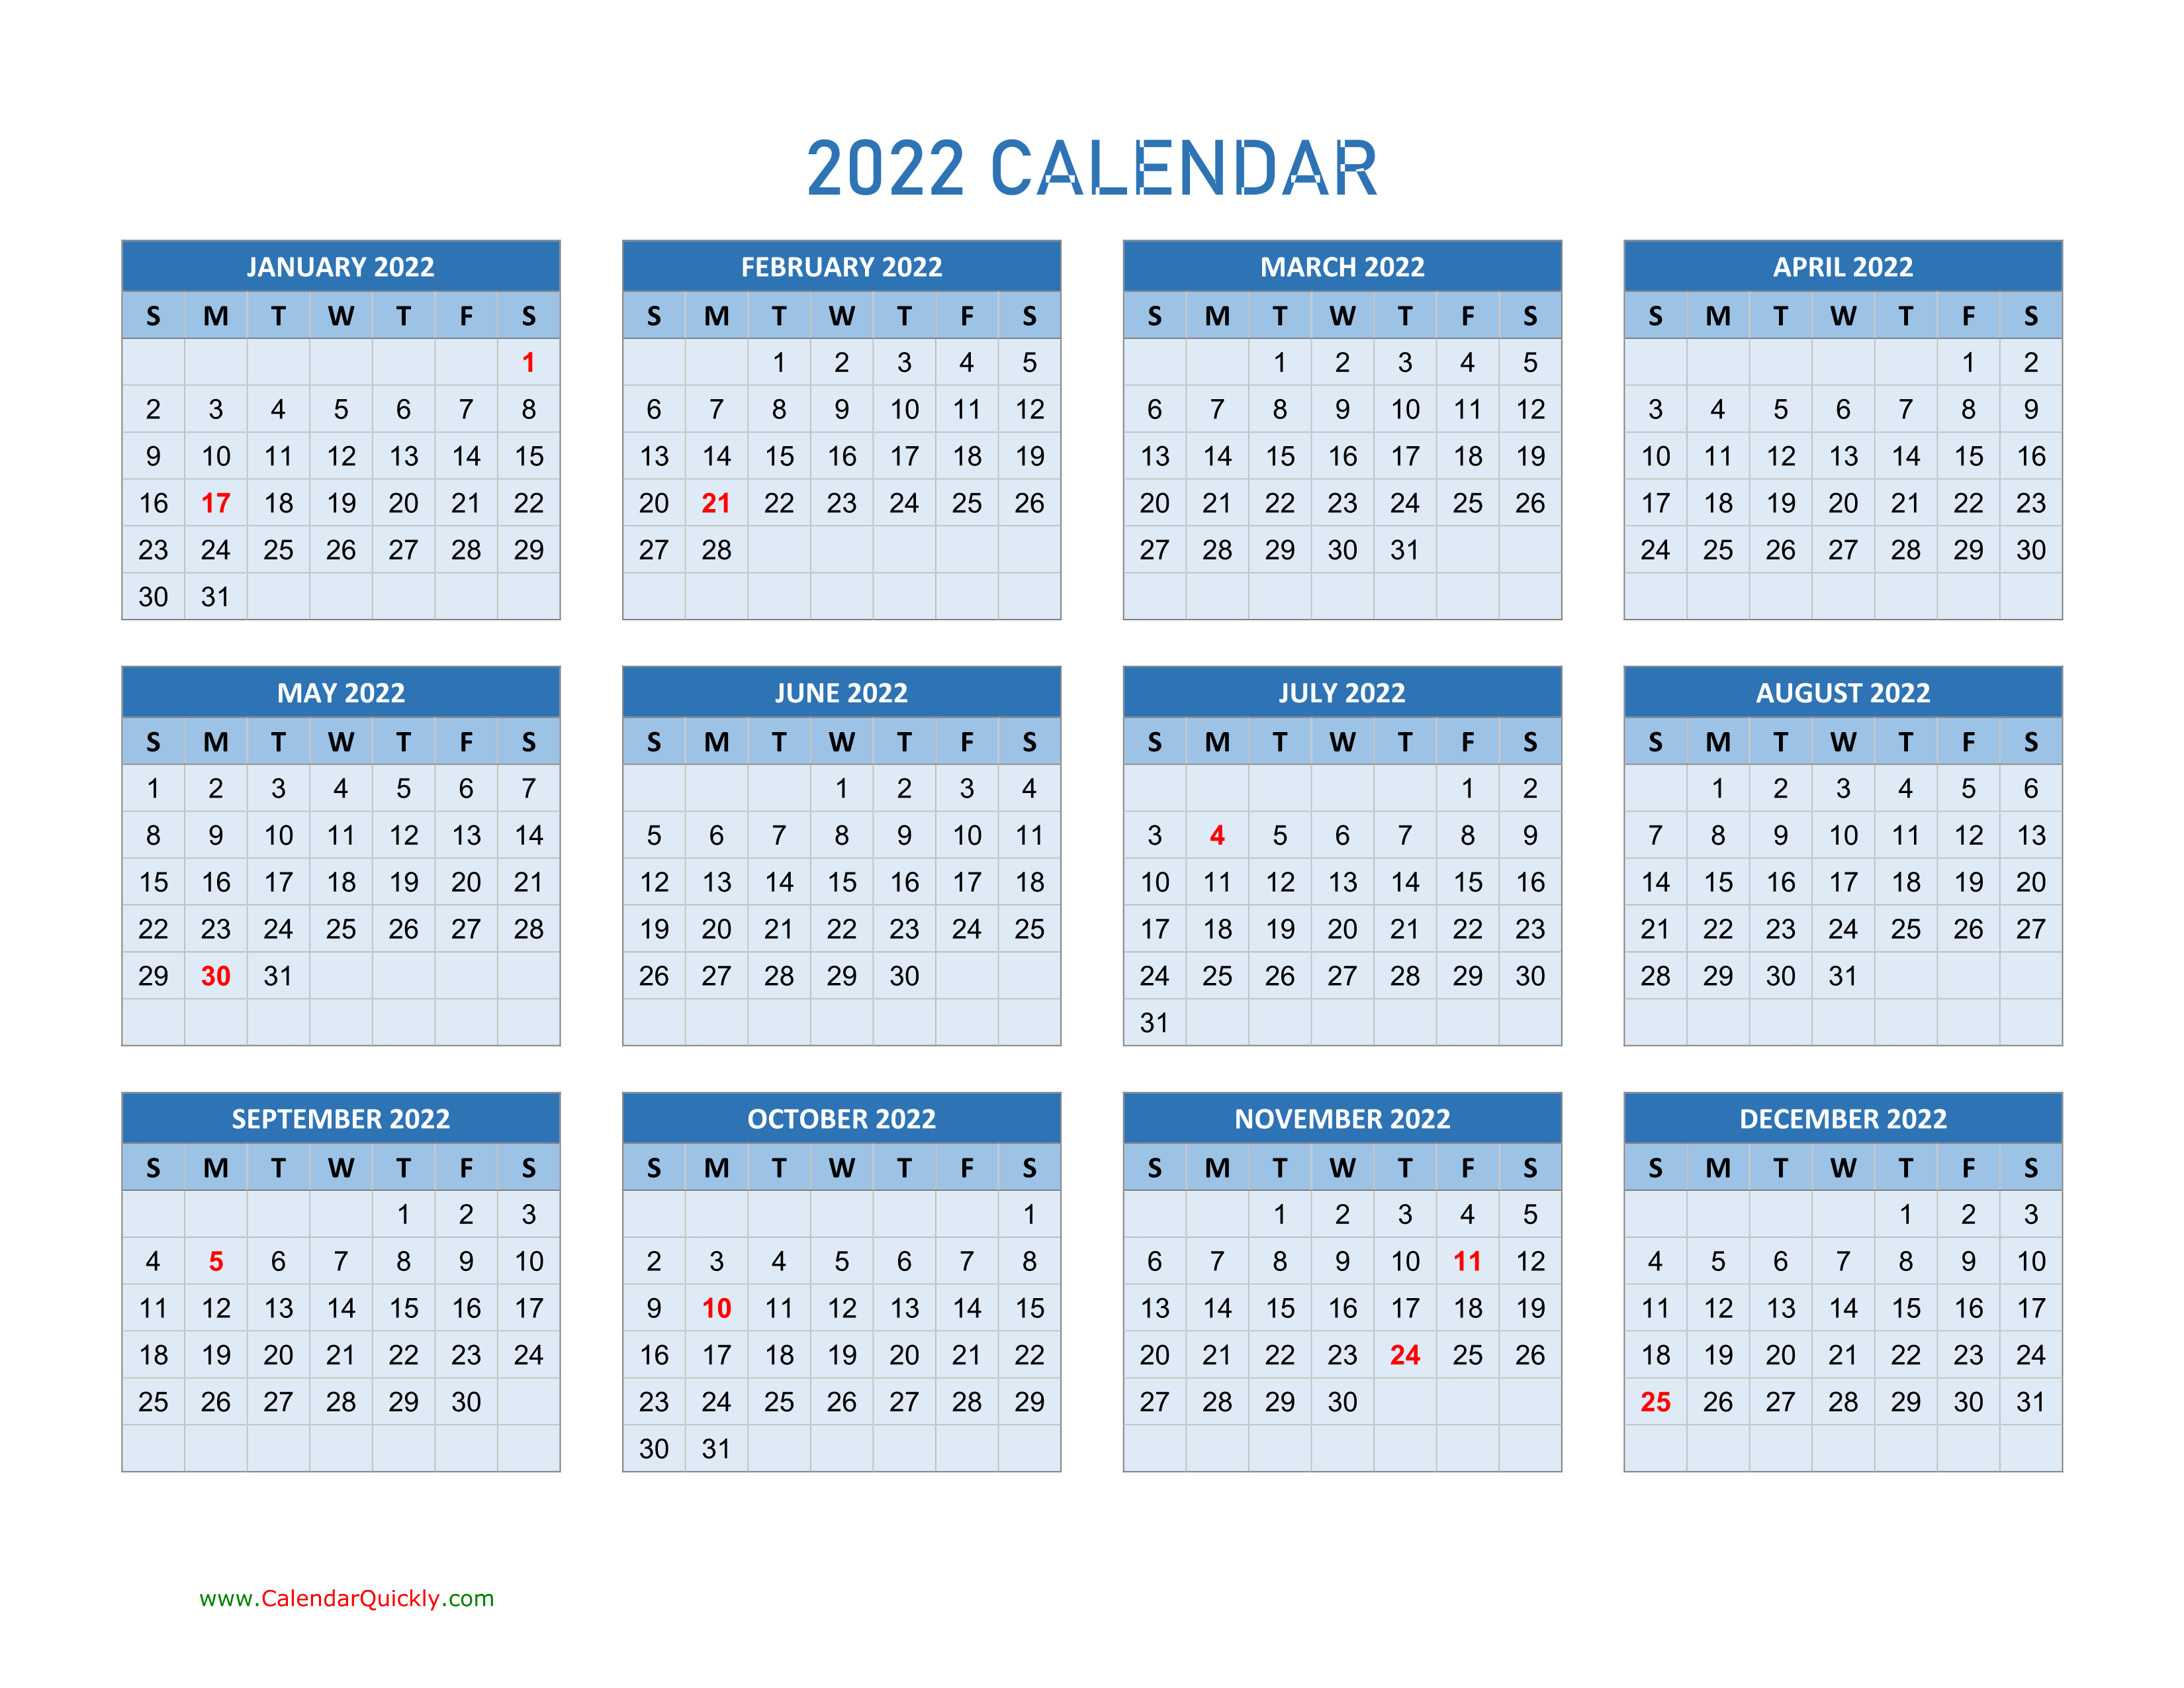 Year 2022 Calendars   Calendar Quickly Throughout Full Page January 2022 Calendar